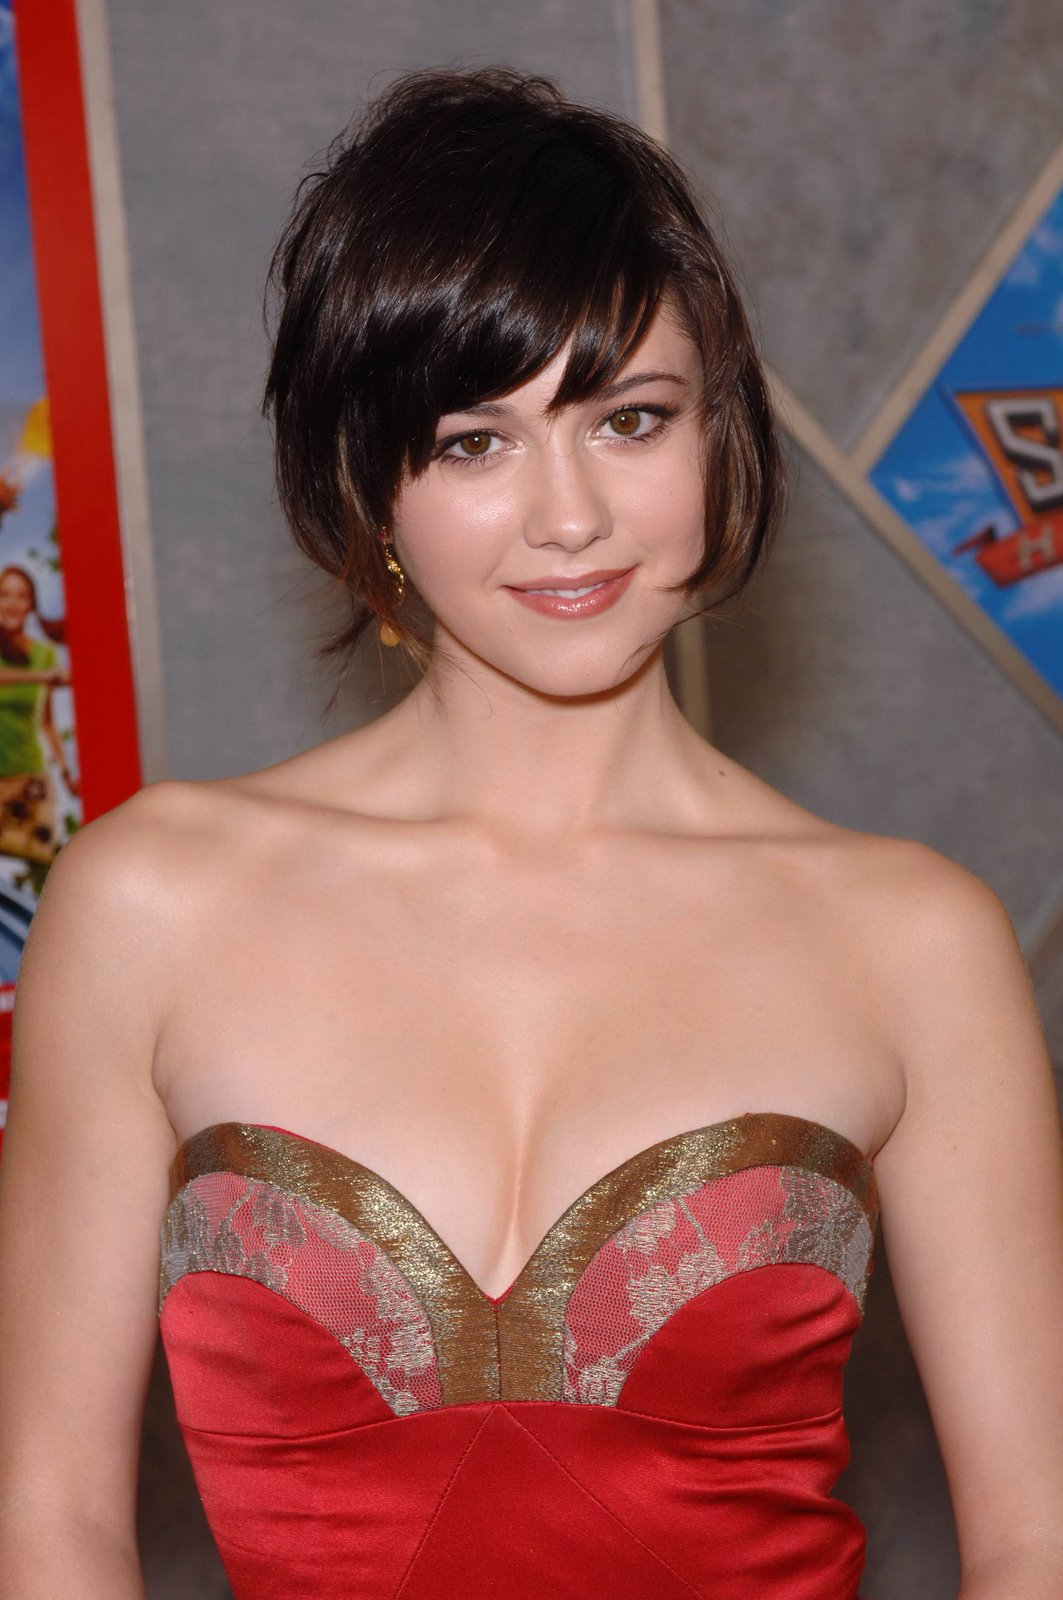 bra size of mary elizabeth winstead 32b measurements of mary elizabeth ...